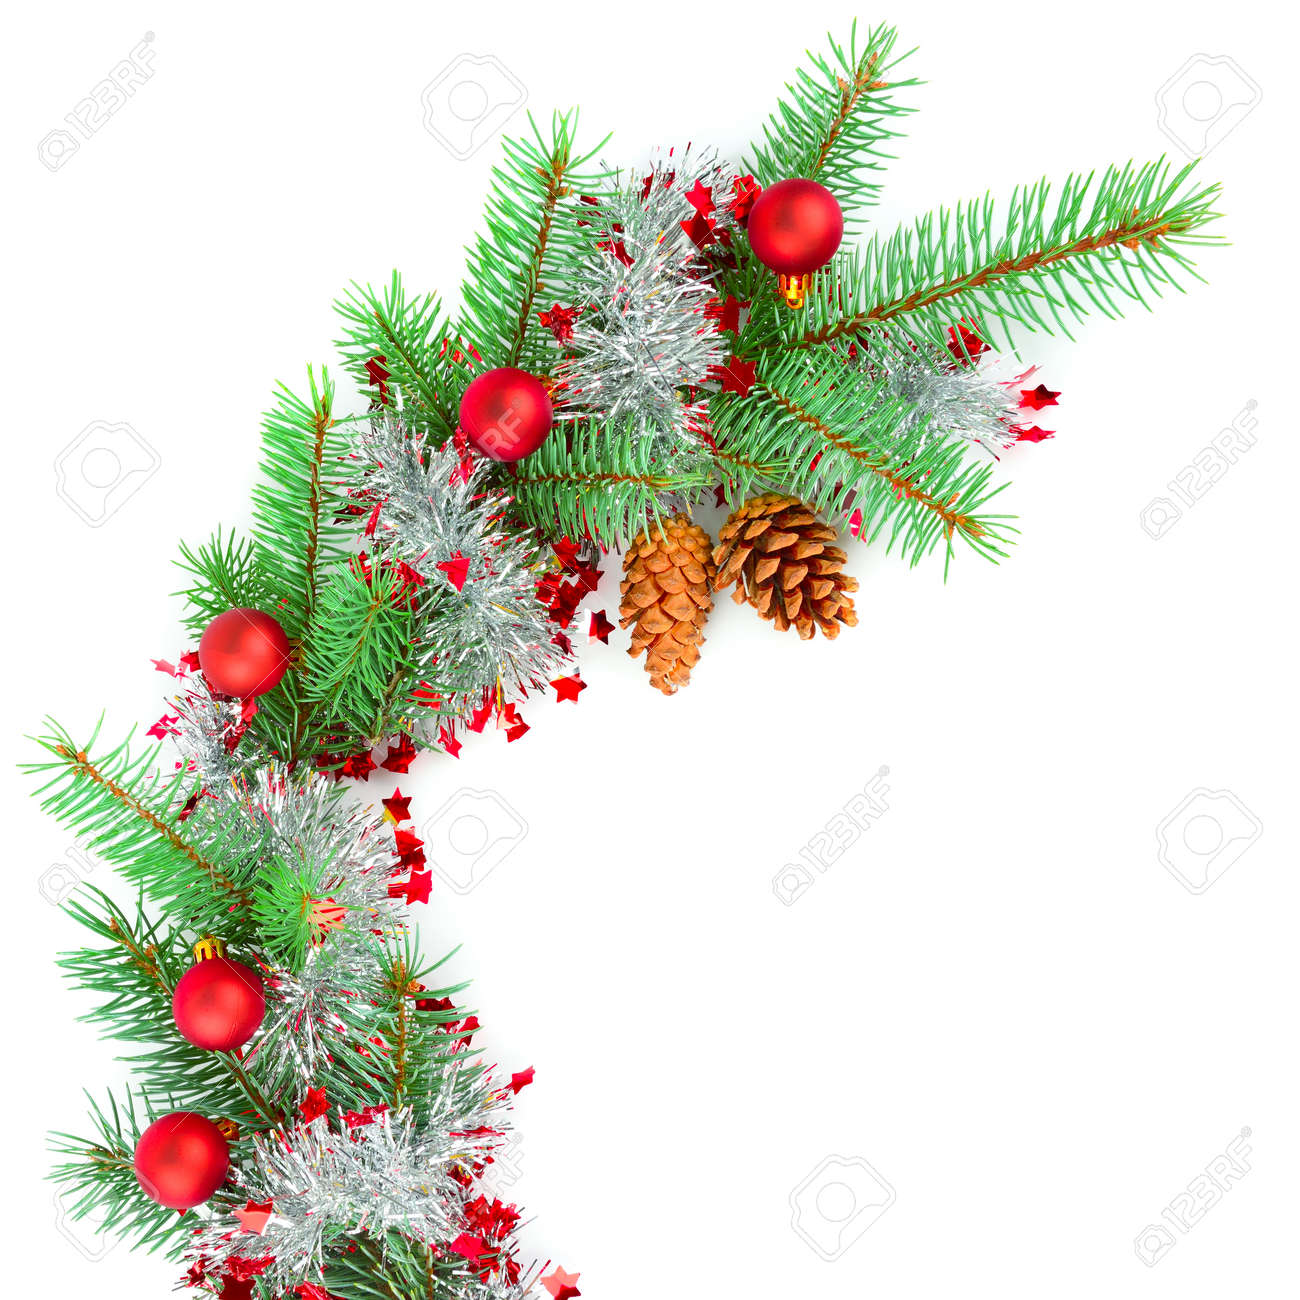 Christmas decor Isolated on a white background. Free space for text. - 141408539